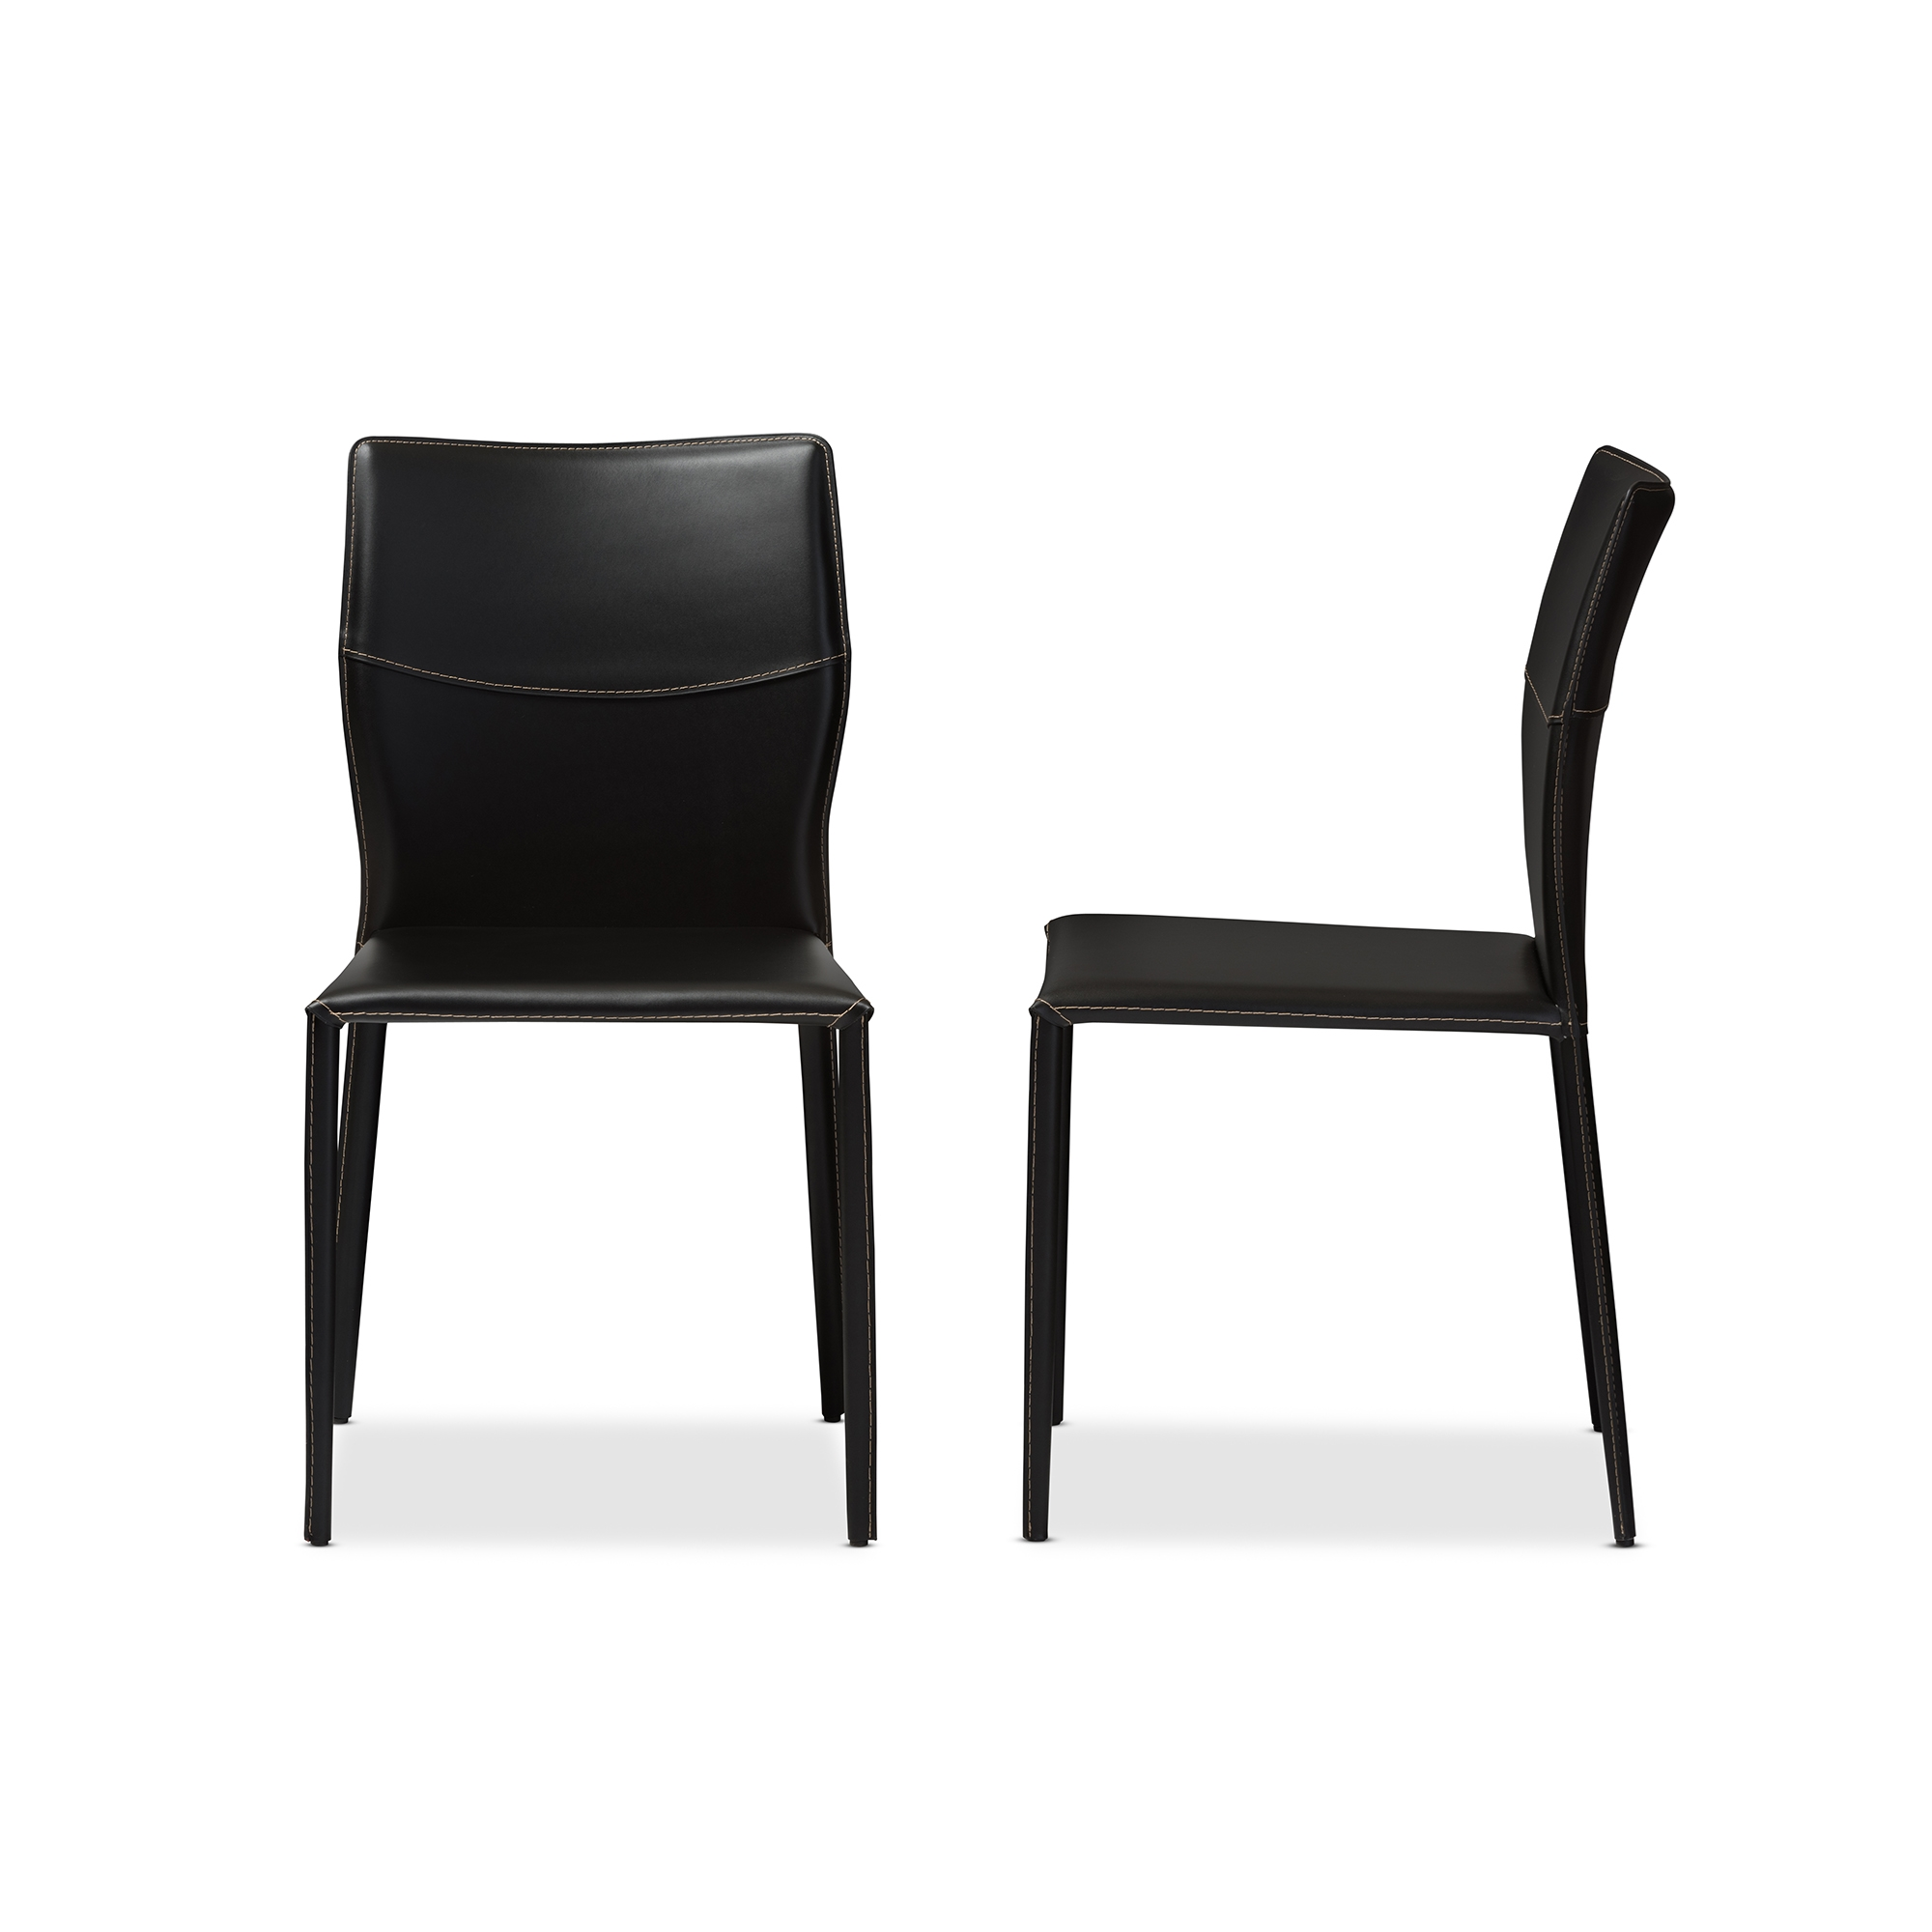 baxton studio asper modern and black leather upholstered dining chair affordable modern furniture in chicago